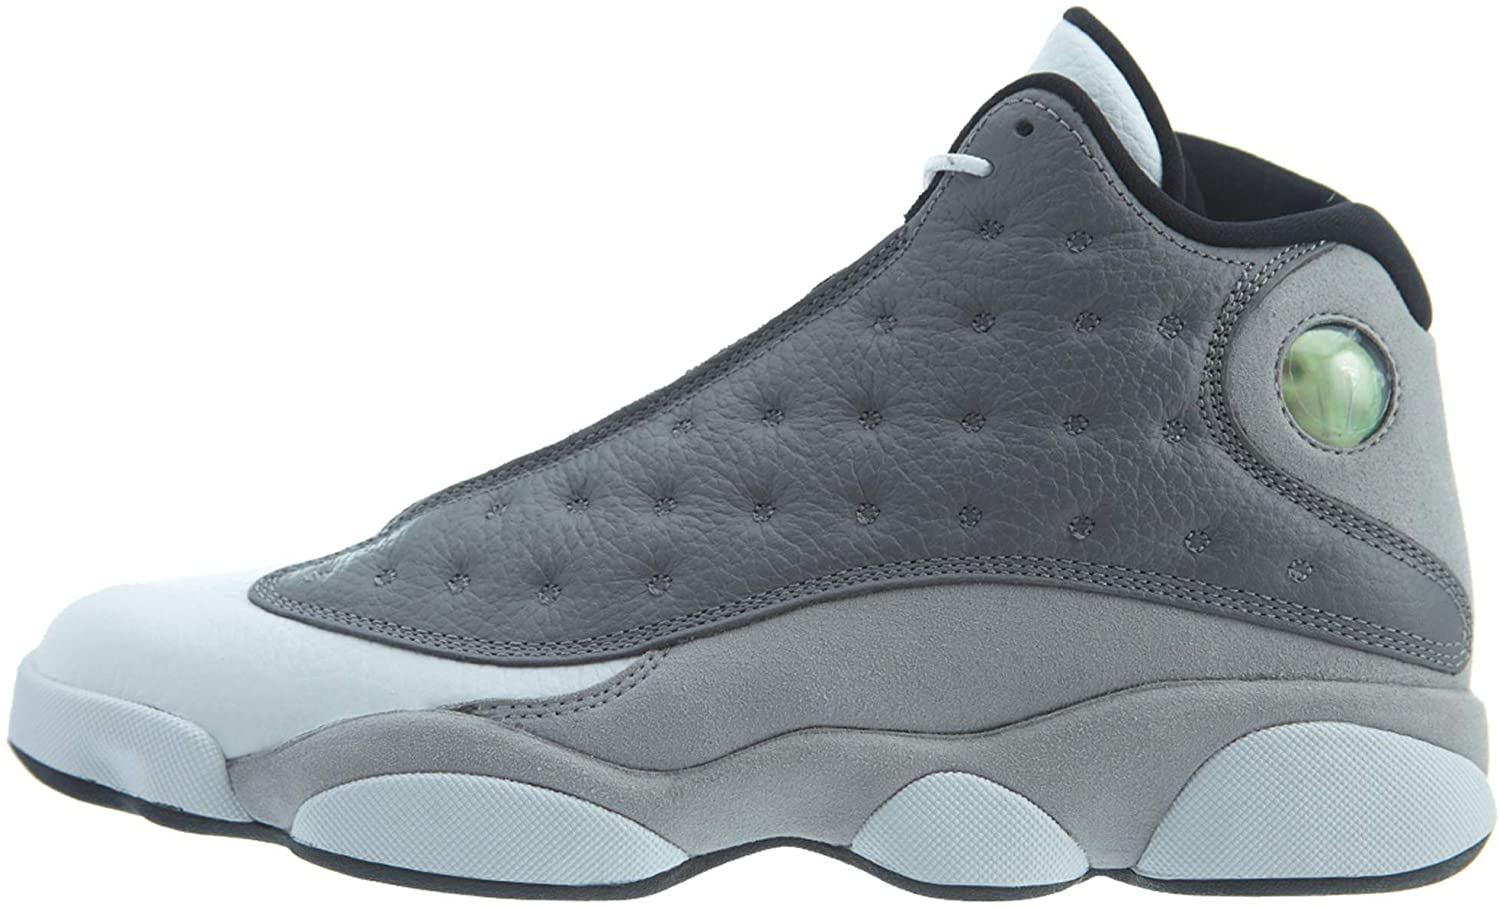 Jordan Nike Men's Air 13 Retro 'Atmosphere Grey' 414571-016 (Size: 11.5)